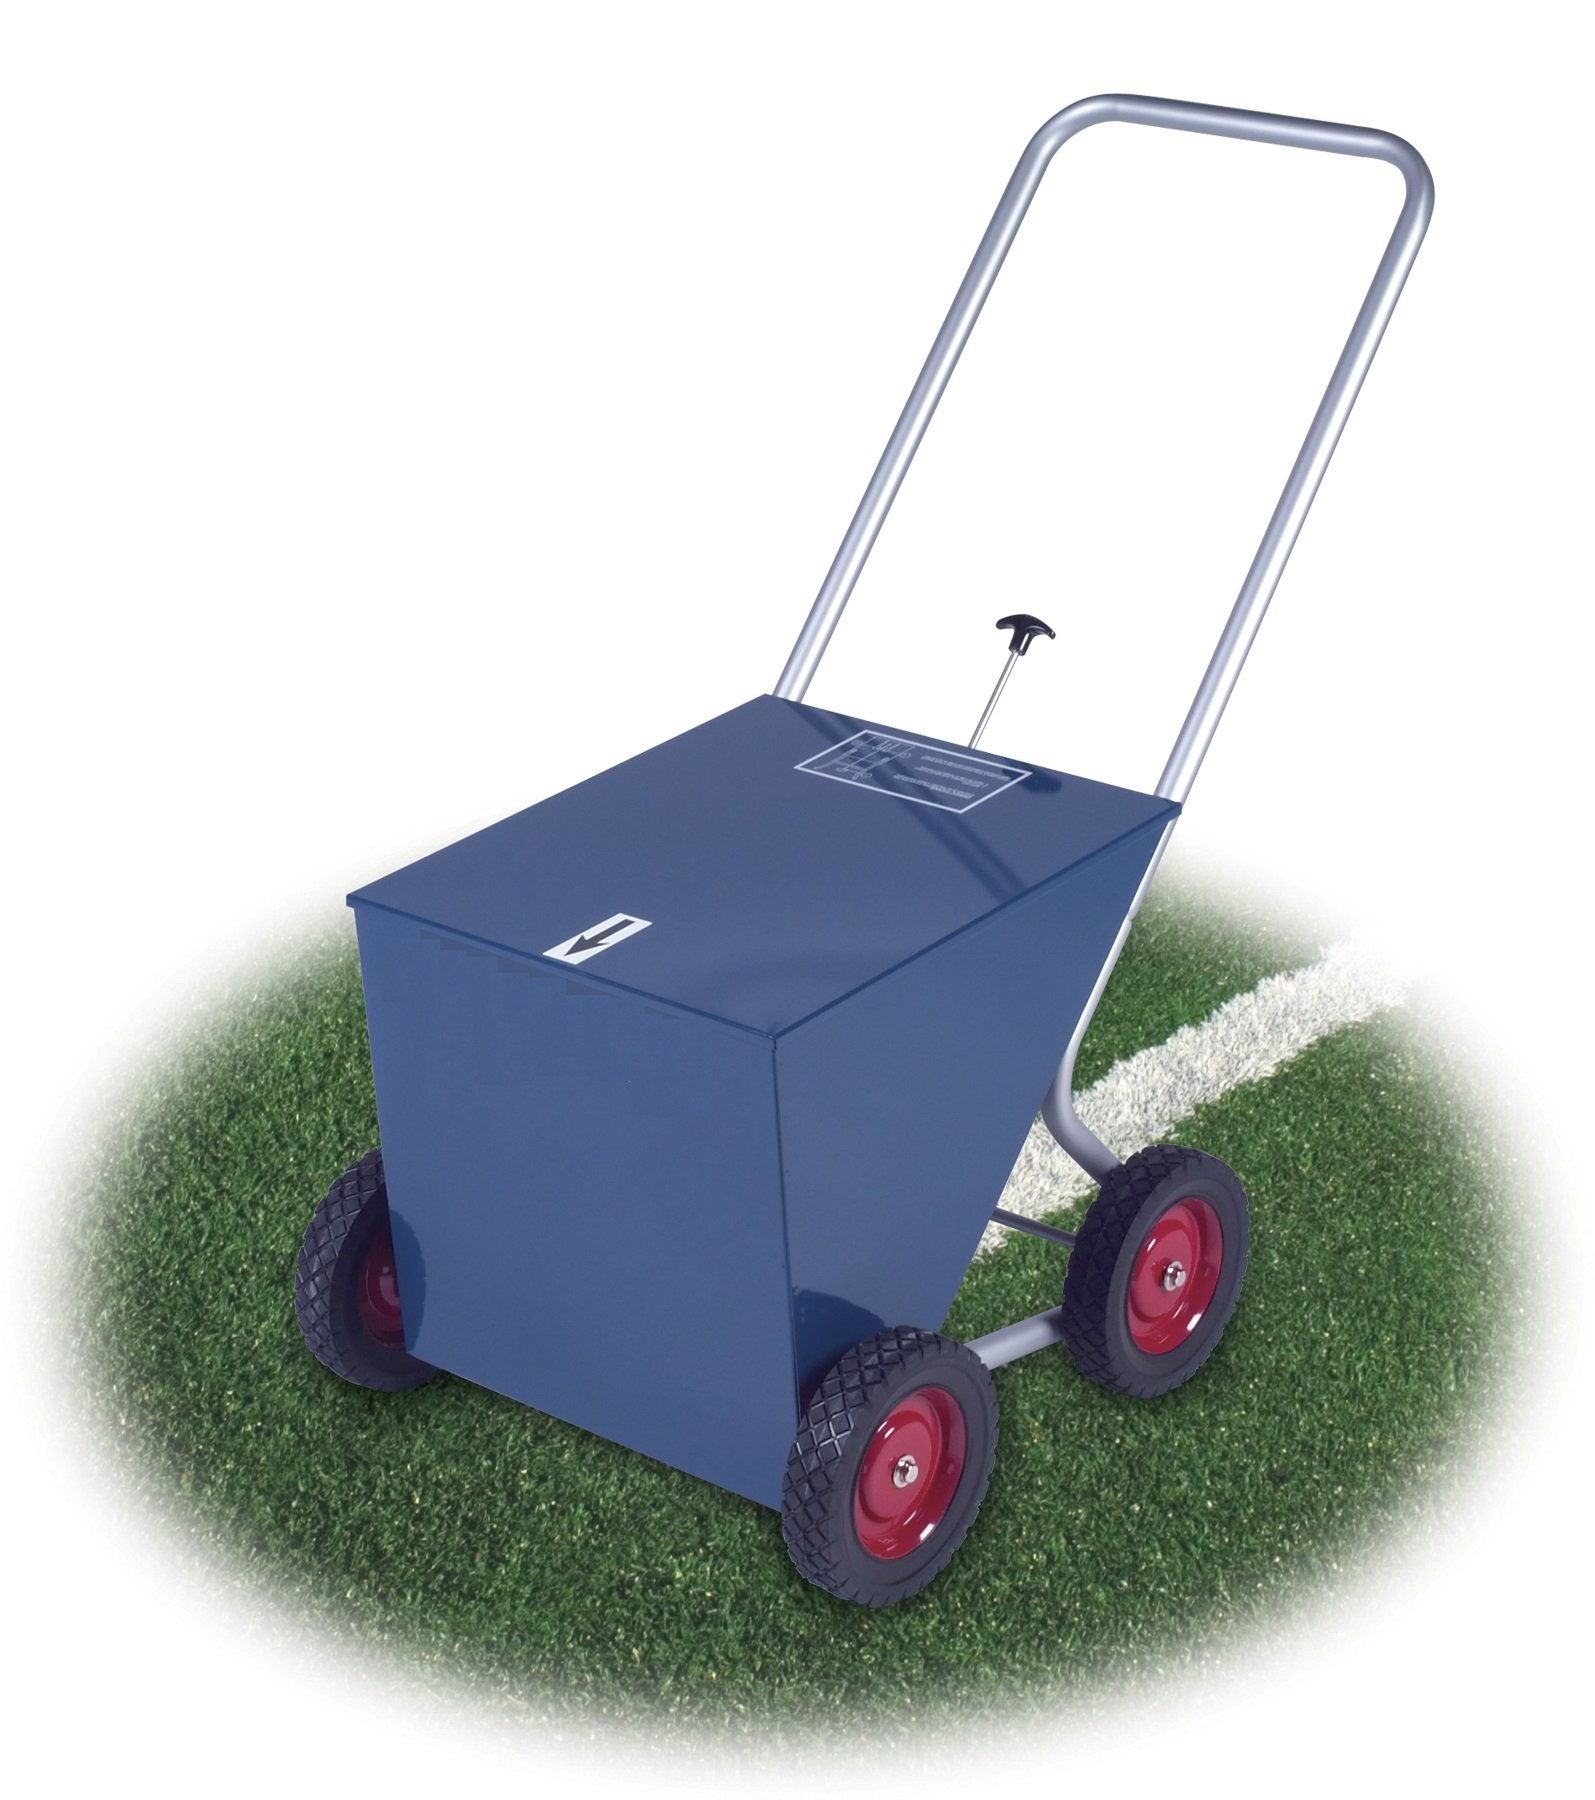 Bismarck 50 lb baseball softball football soccer parks & rec you name it field marker. Includes 10 year warranty.